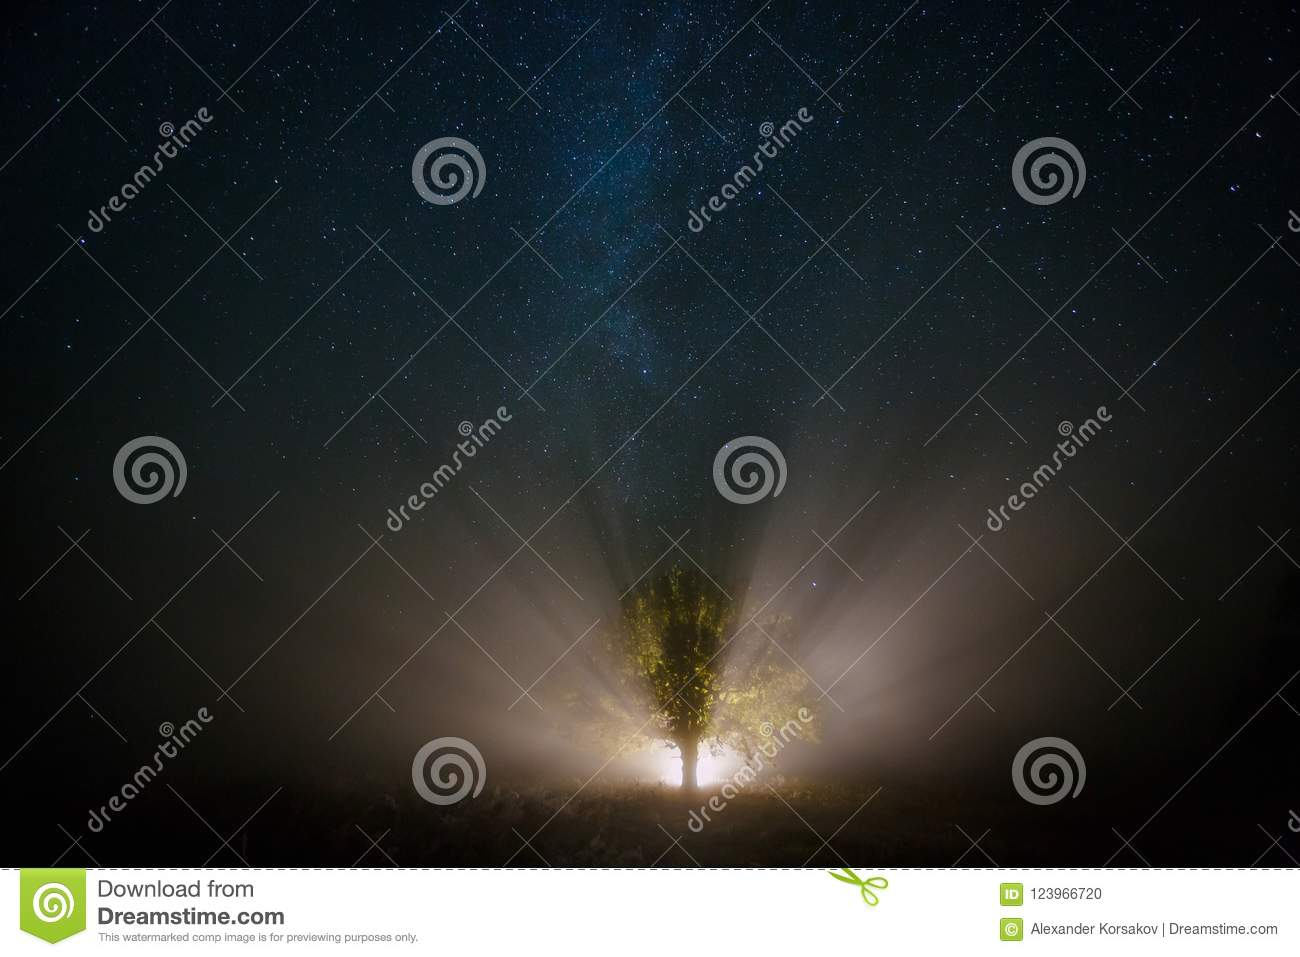 Starry sky and magical tree lit by torch